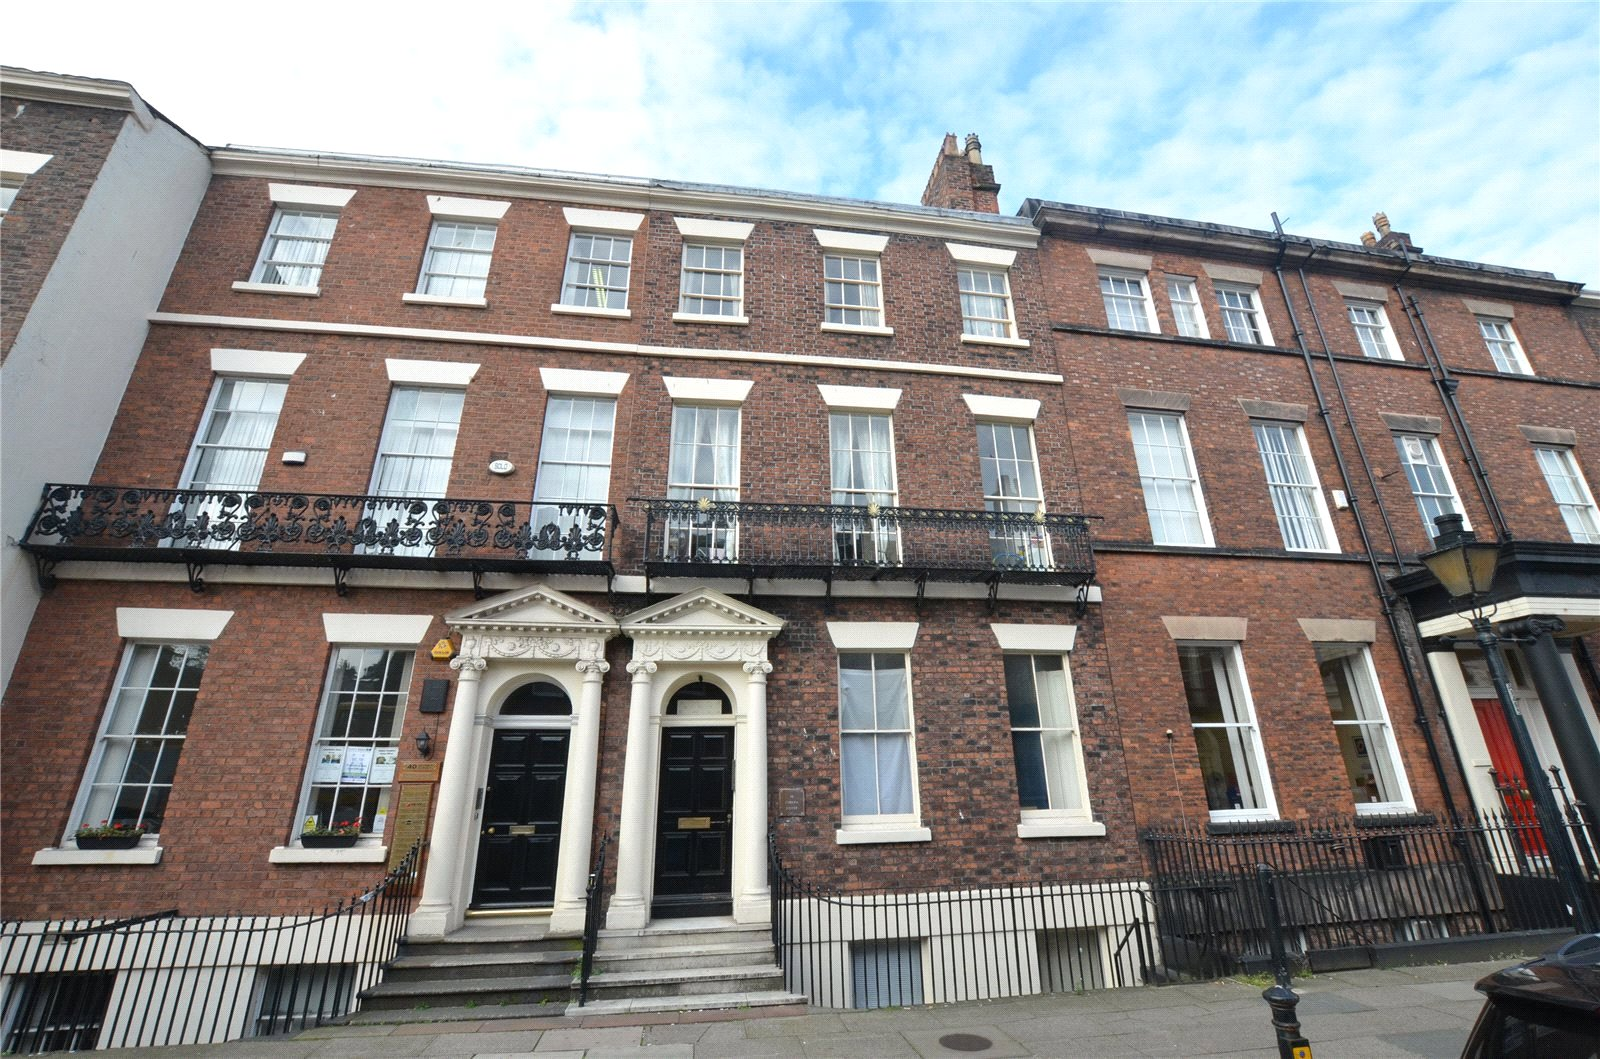 2 Bedrooms Apartment Flat for sale in Rodney Street, Liverpool, Merseyside, L1